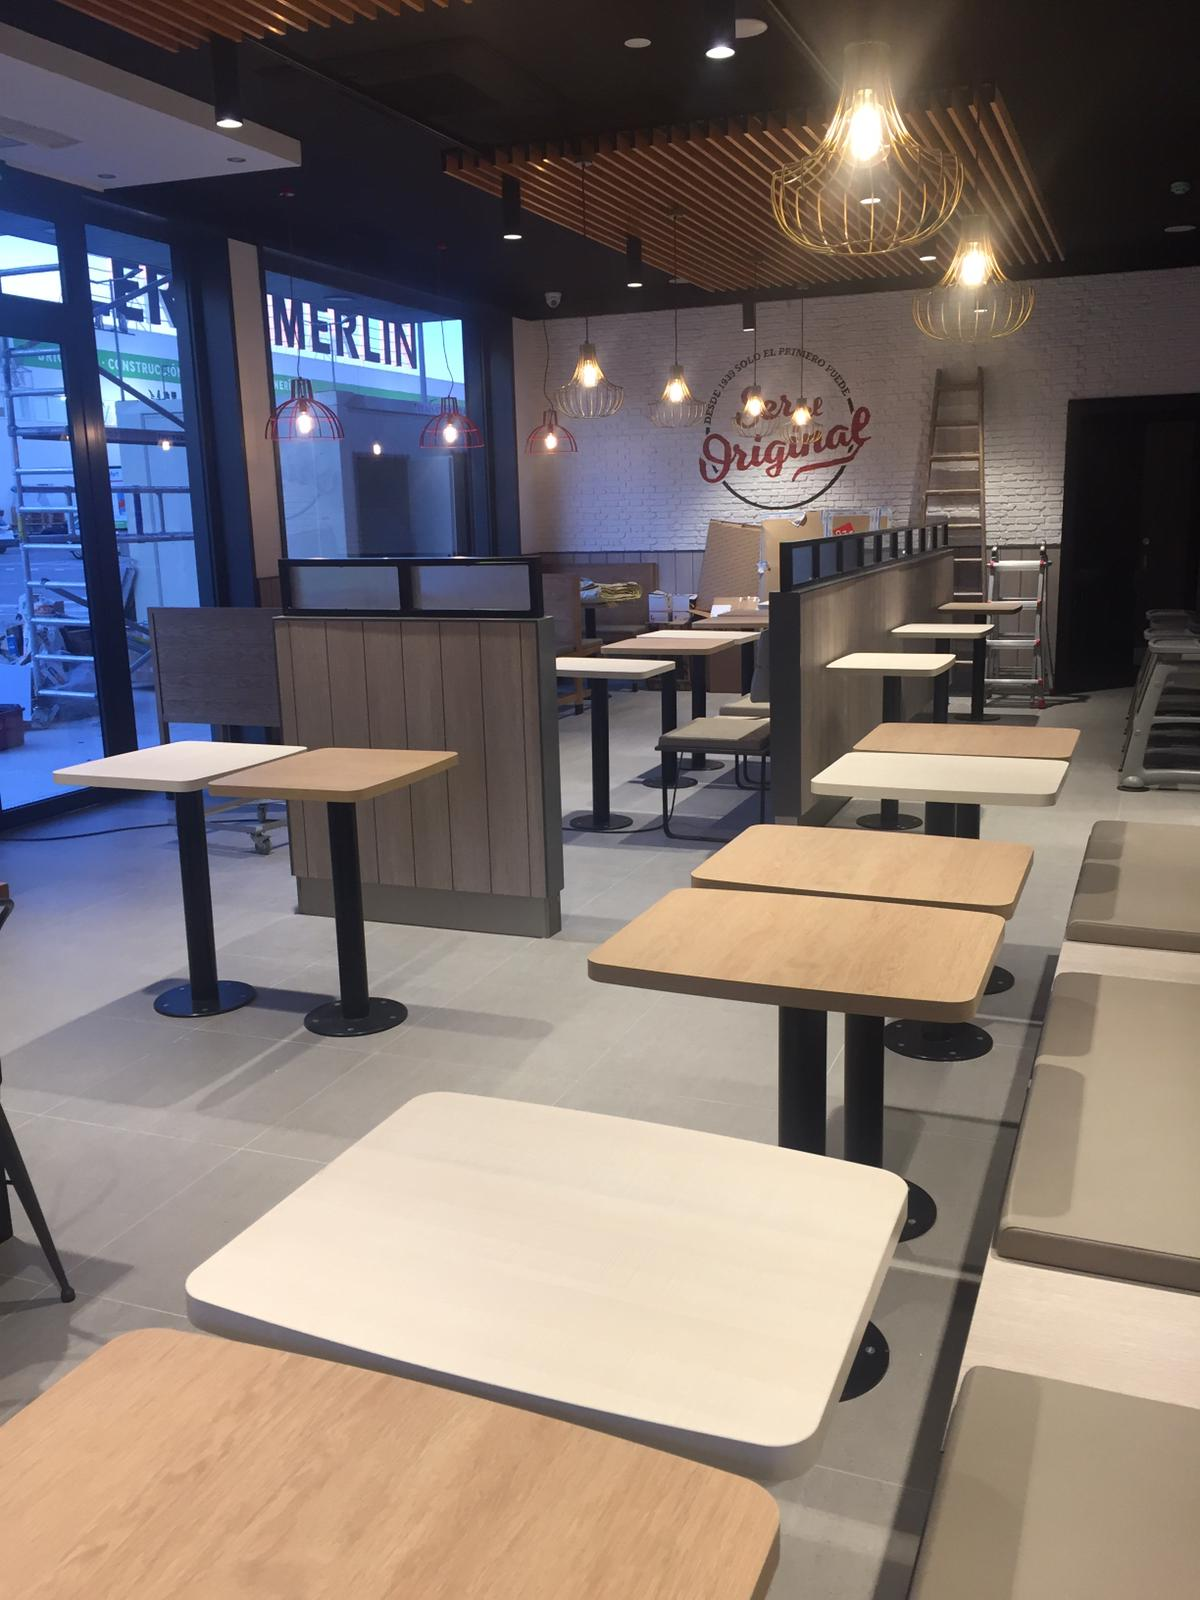 Interio obra civil KFC Castellón